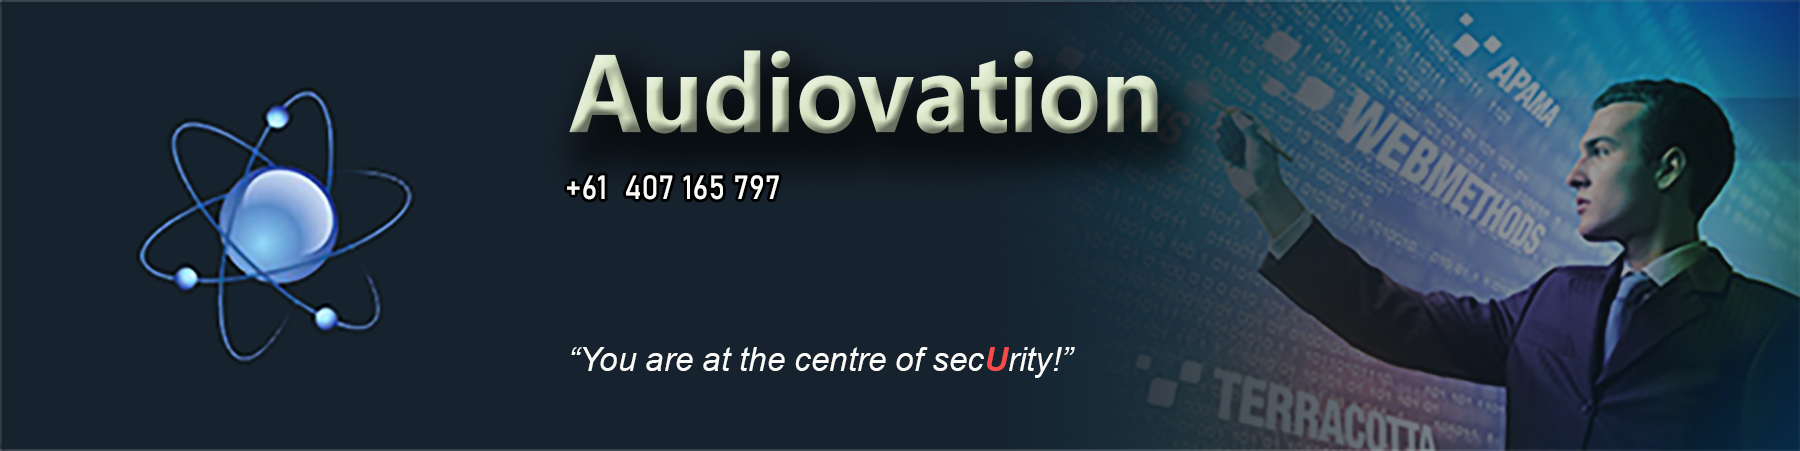 Header Pic - Audiovation Cyber Security CyberSecurity and Network Analysis